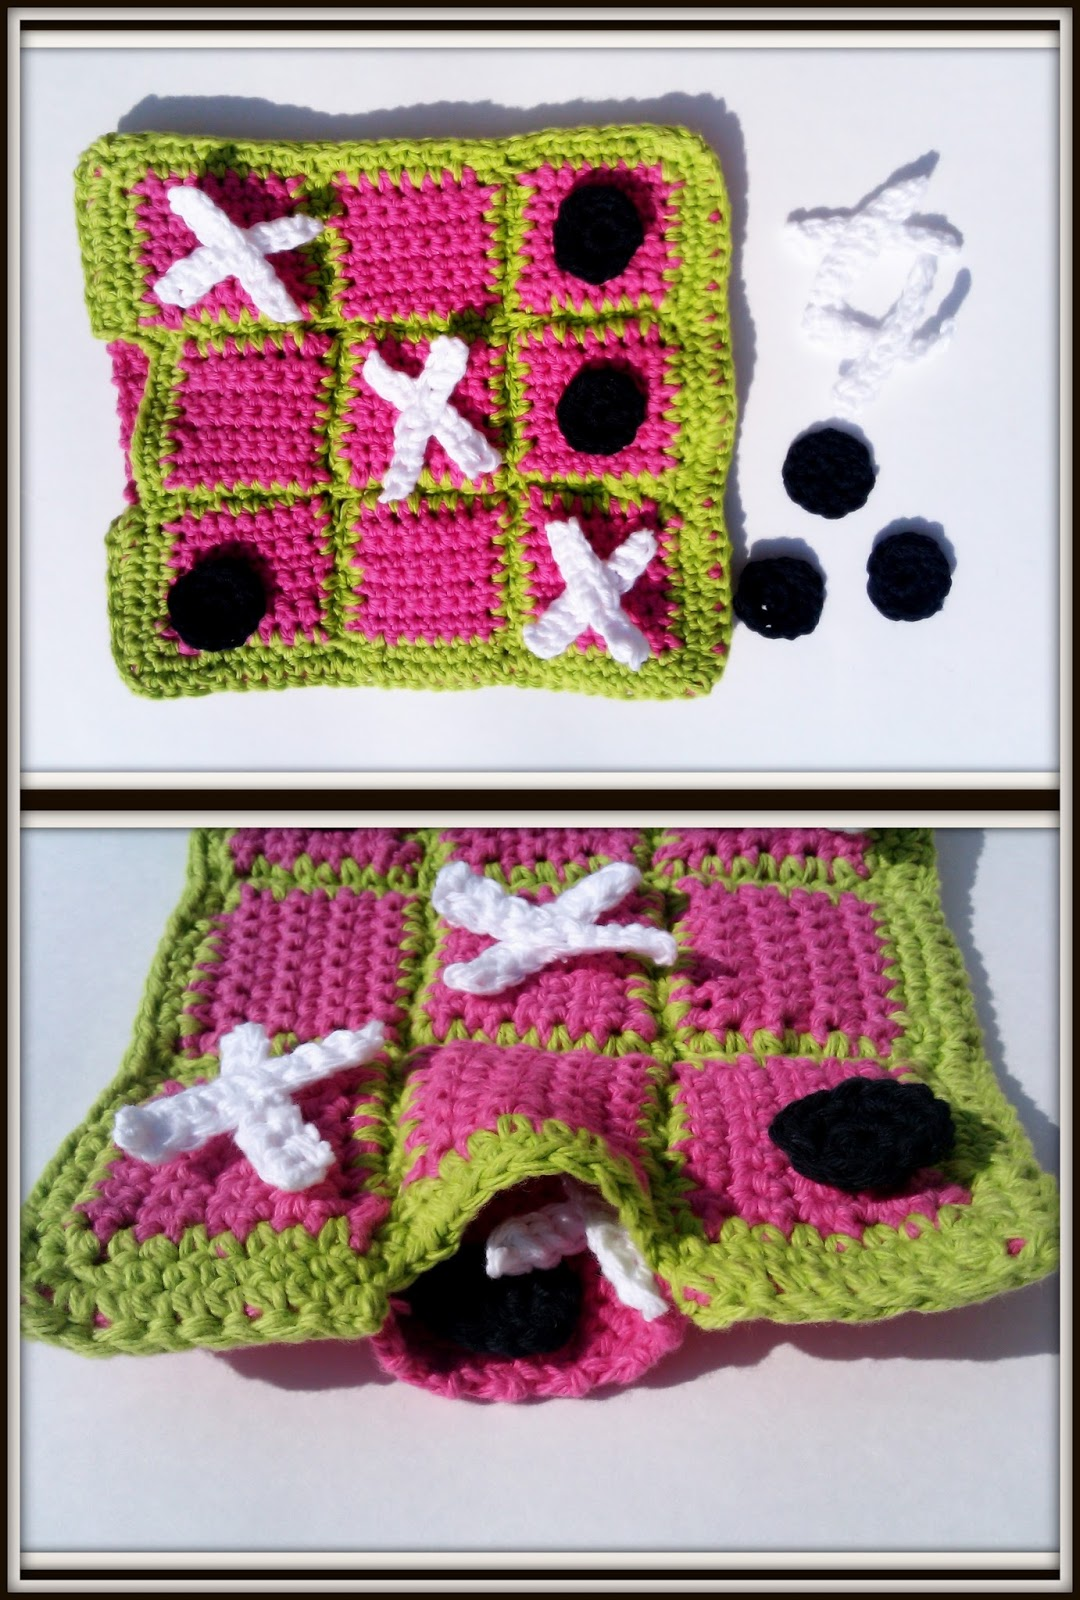 Crocheting Games : Double Treble Craft Adventures: Crochet Tic Tac Toe Game